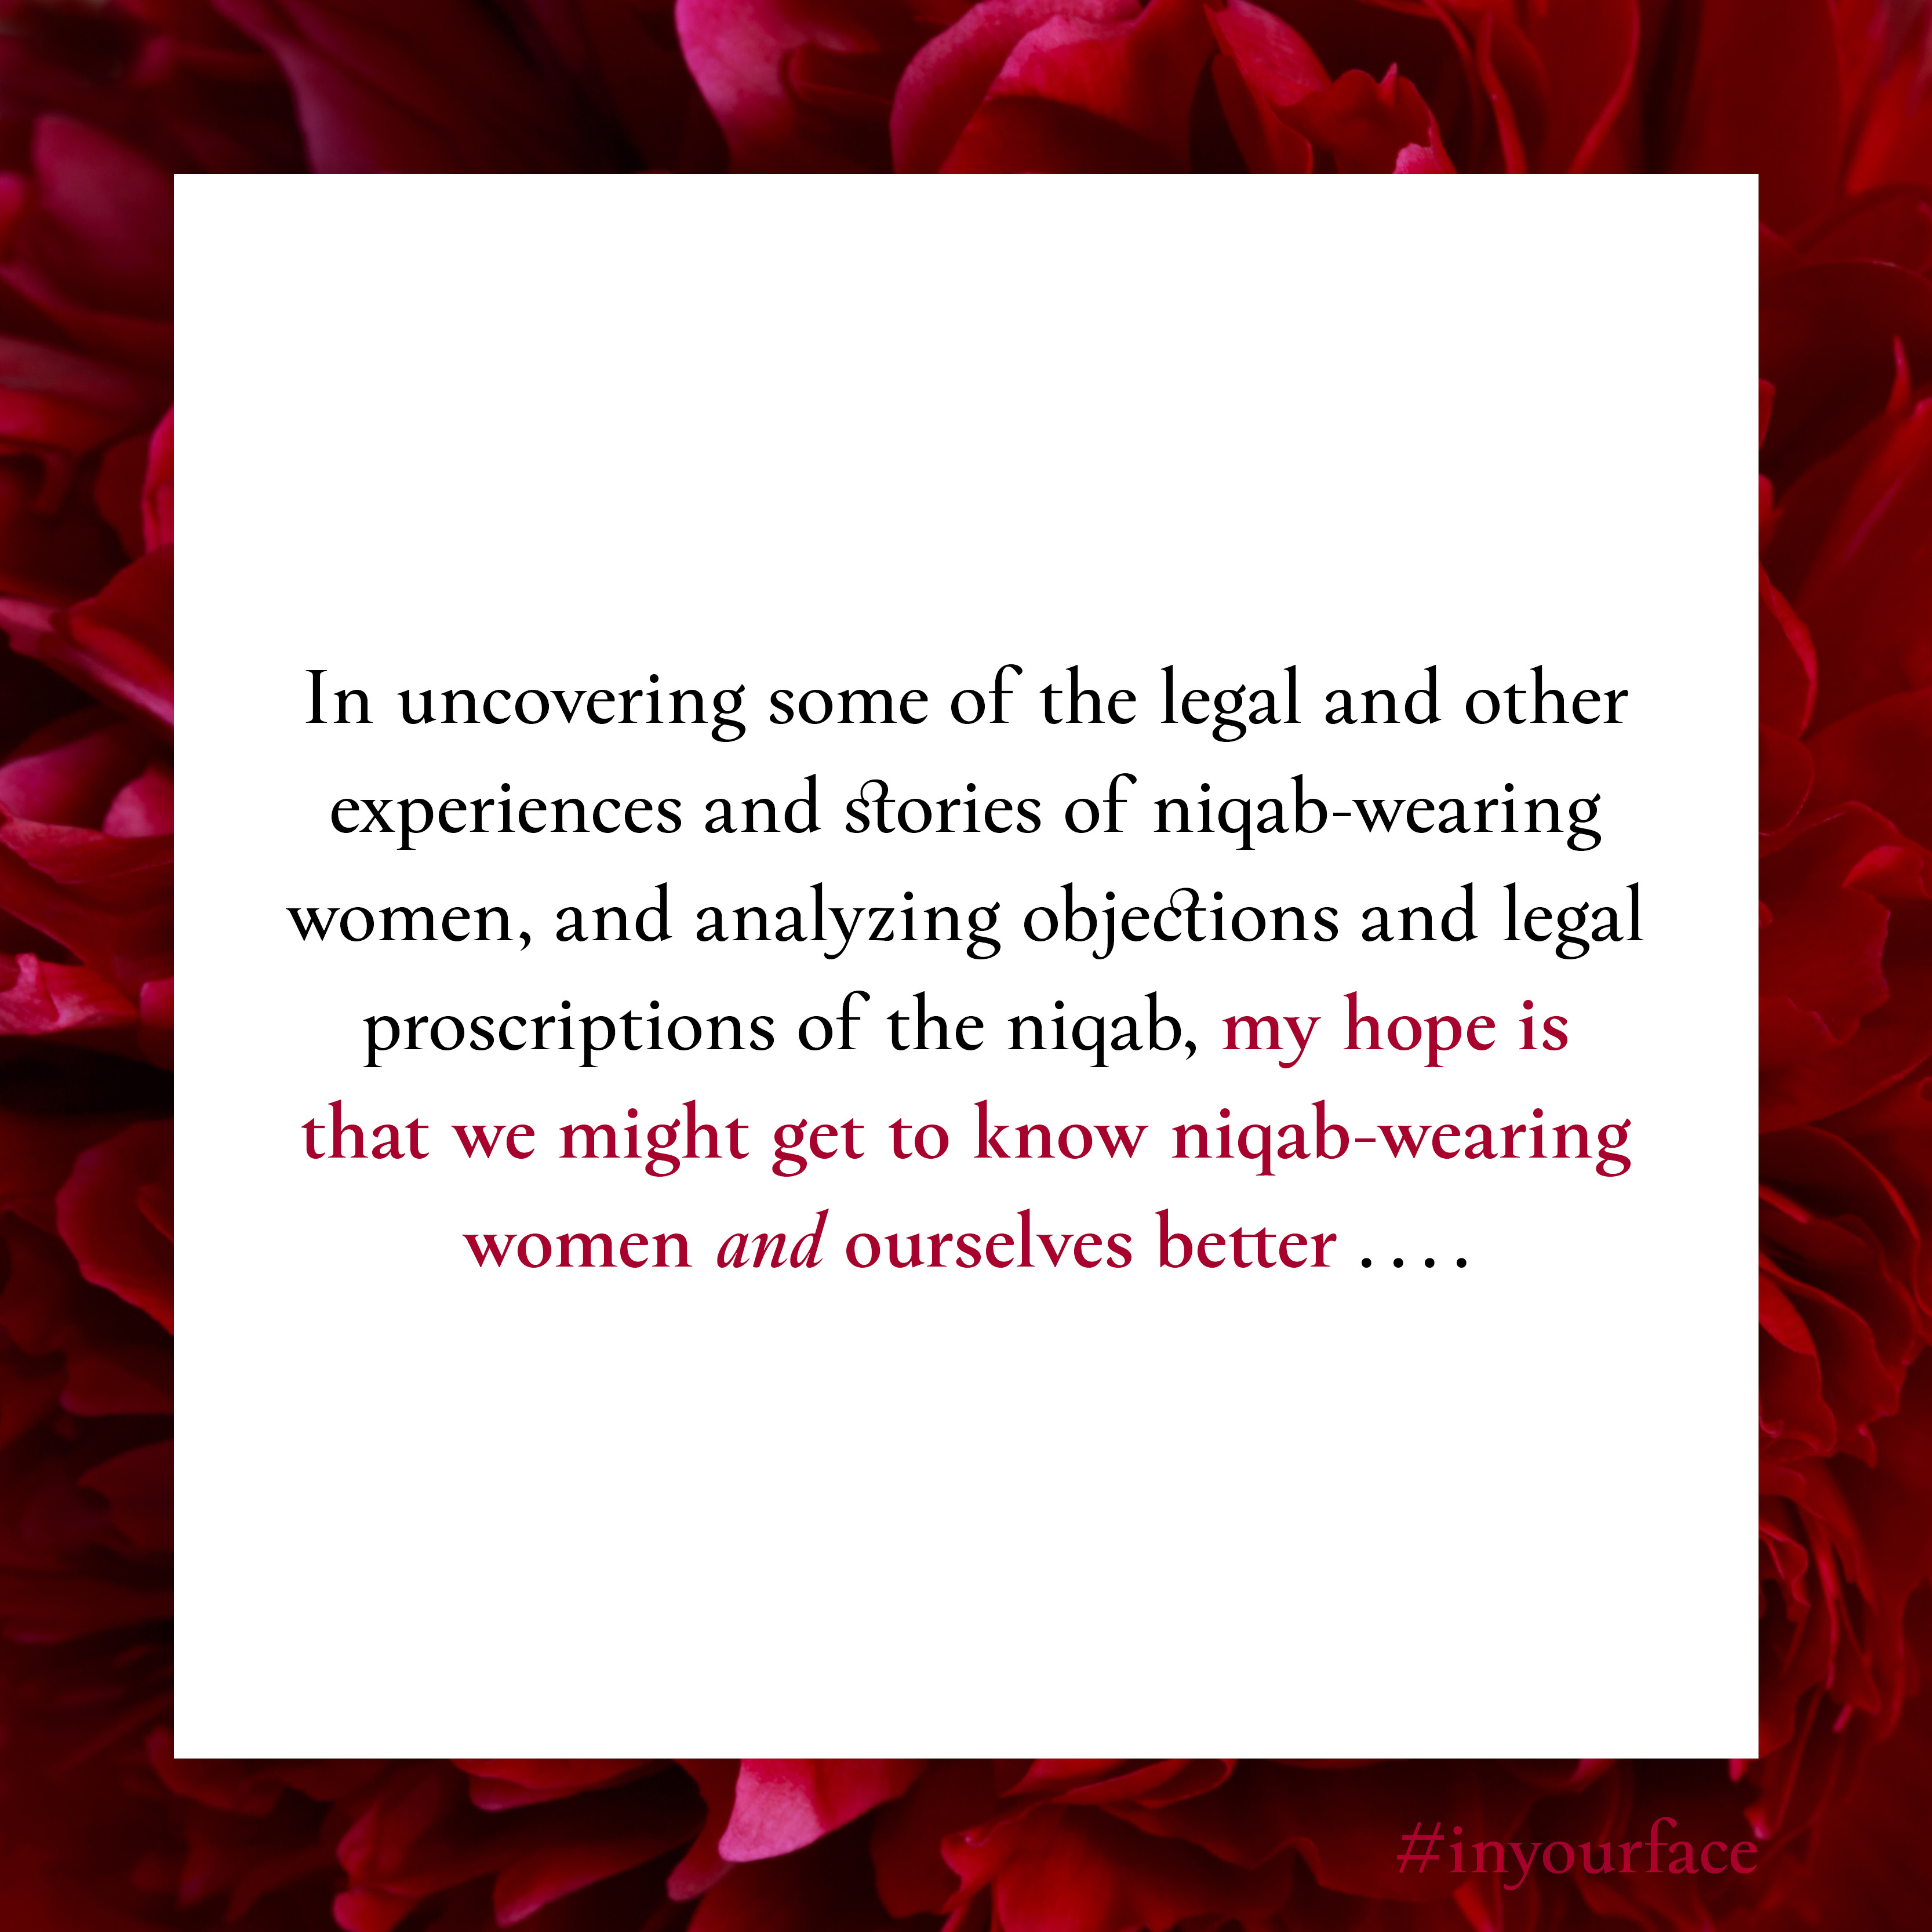 """Excerpt from In Your Face by Natasha Bakht. It reads: """"In uncovering some of the legal and other experiences and stories of niqab-wearing women, and analyzing objections and legal proscriptions of the niqab, my hope is that we might get to know niqab-wearing women and ourselves better ...."""""""